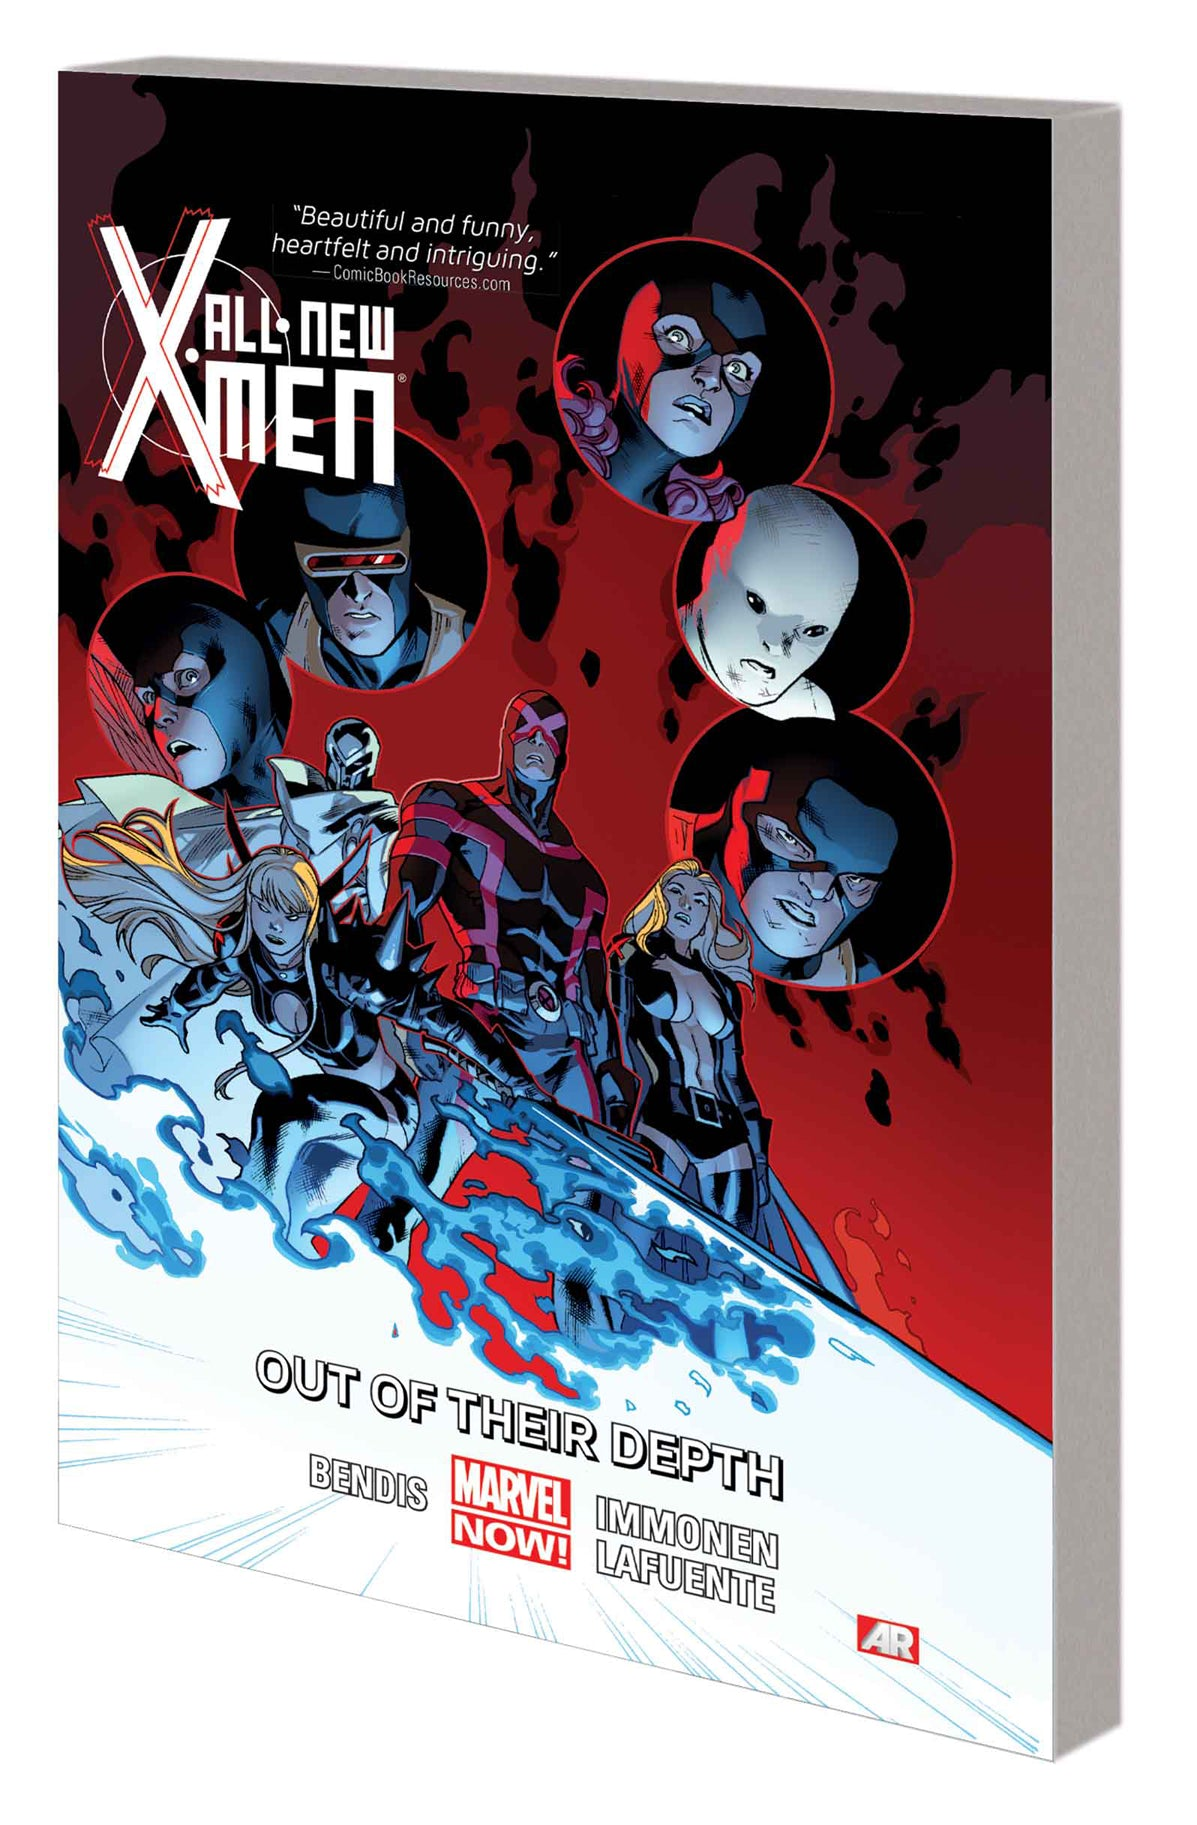 ALL NEW X-MEN TP VOL 03 OUT OF THEIR DEPTH | Game Master's Emporium (The New GME)